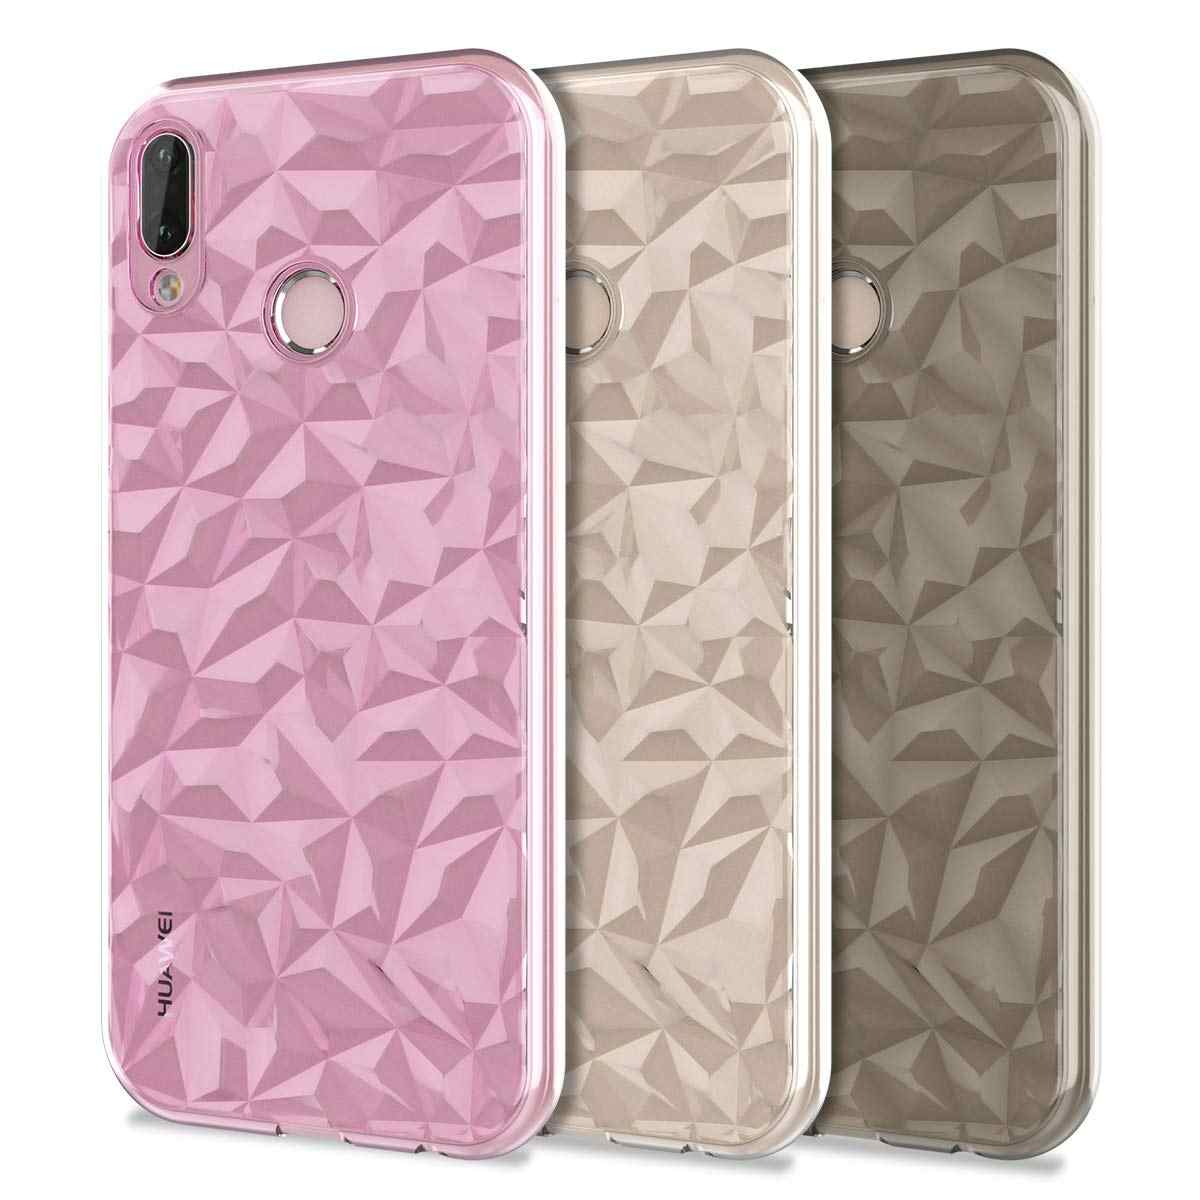 Luxury Thin Soft 3D Diamond Case for Samsung Galaxy A10 A20 2019 A20E A30 A40 A50 A60 A70 M30 A2 Core A6 A8 Plus A7 2018 Fundas